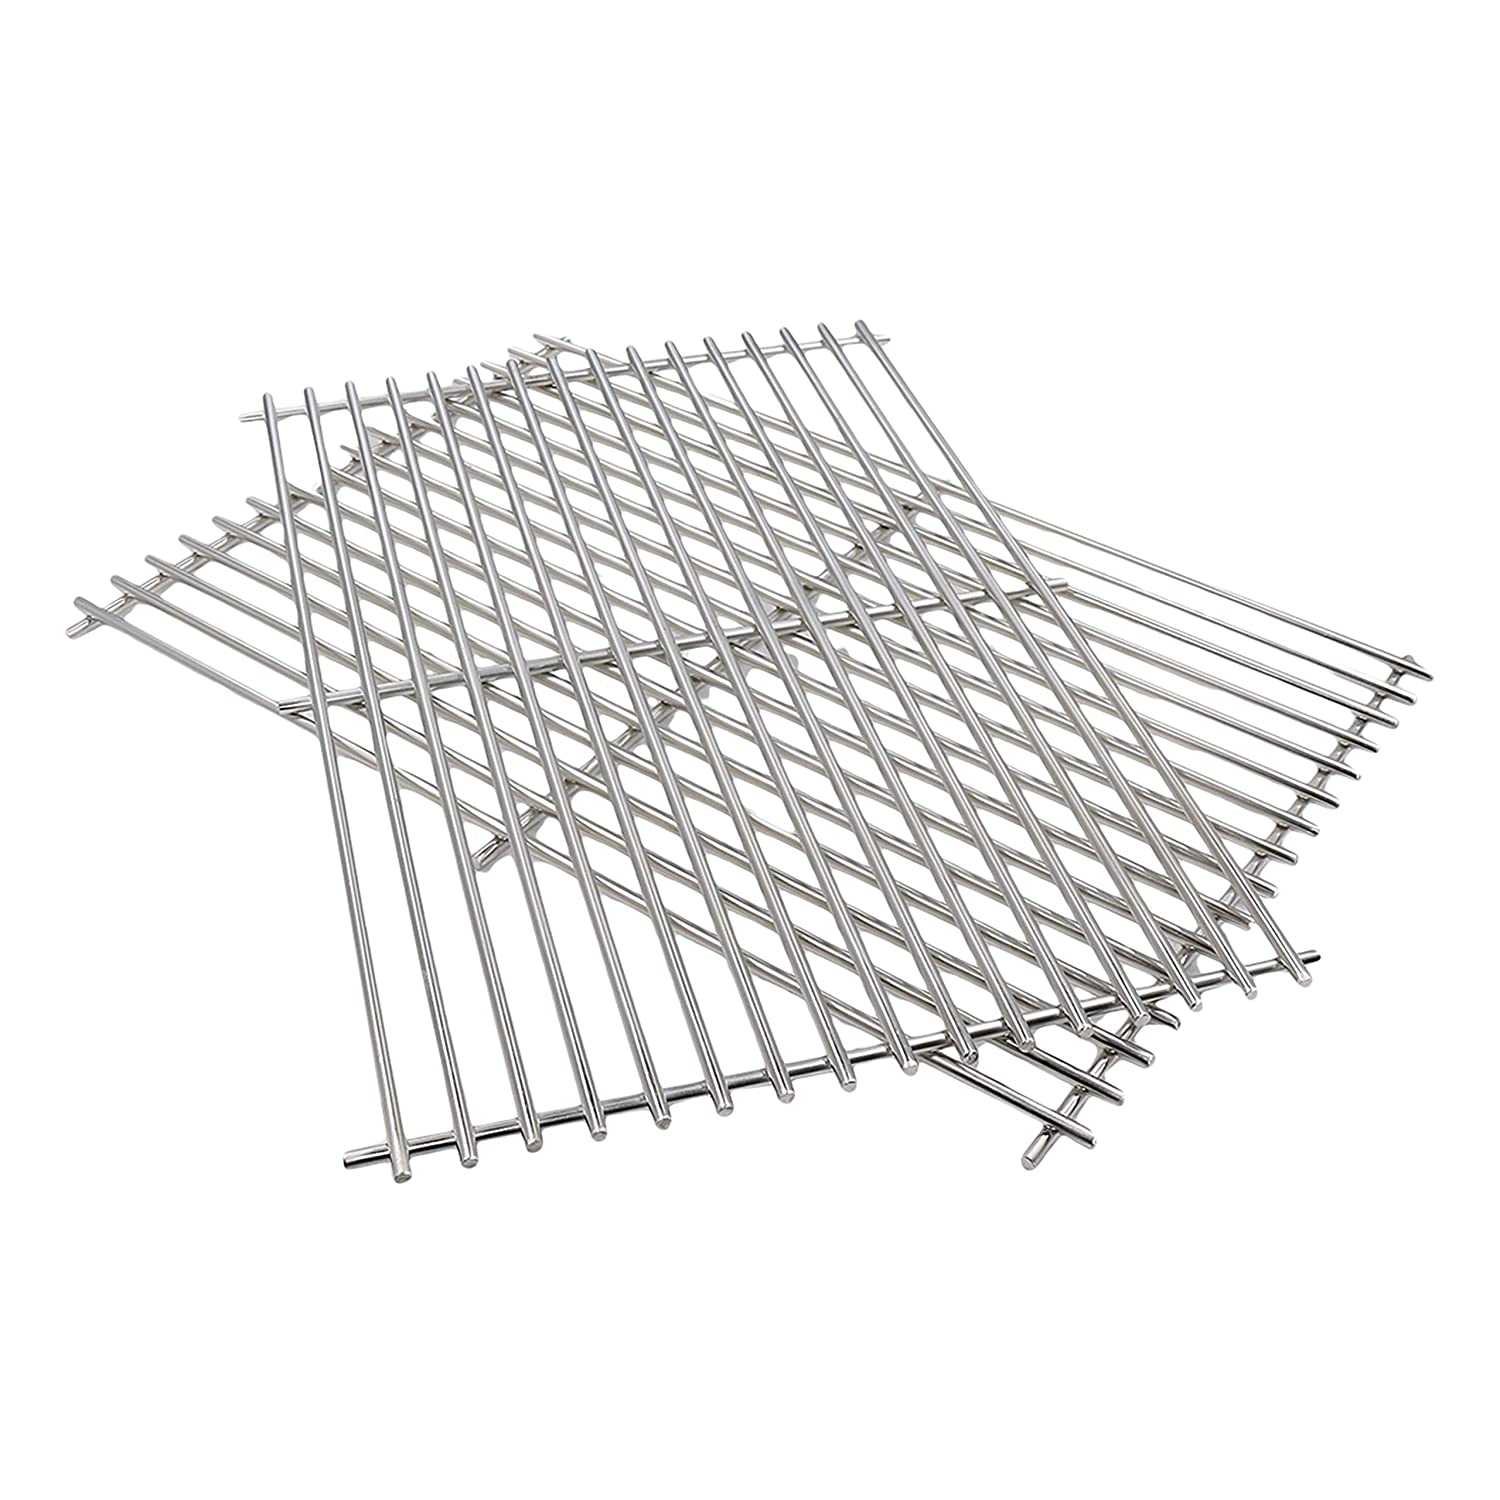 Bar.b.q.s Replacement 52932(set of 2) Stainless Stell Cooking Grid for Centro, Charbroil, Front Avenue, Fiesta, Kenmore, Kirkland, Kmart, Master Chef, and Thermos Gas Grill H5022932SS